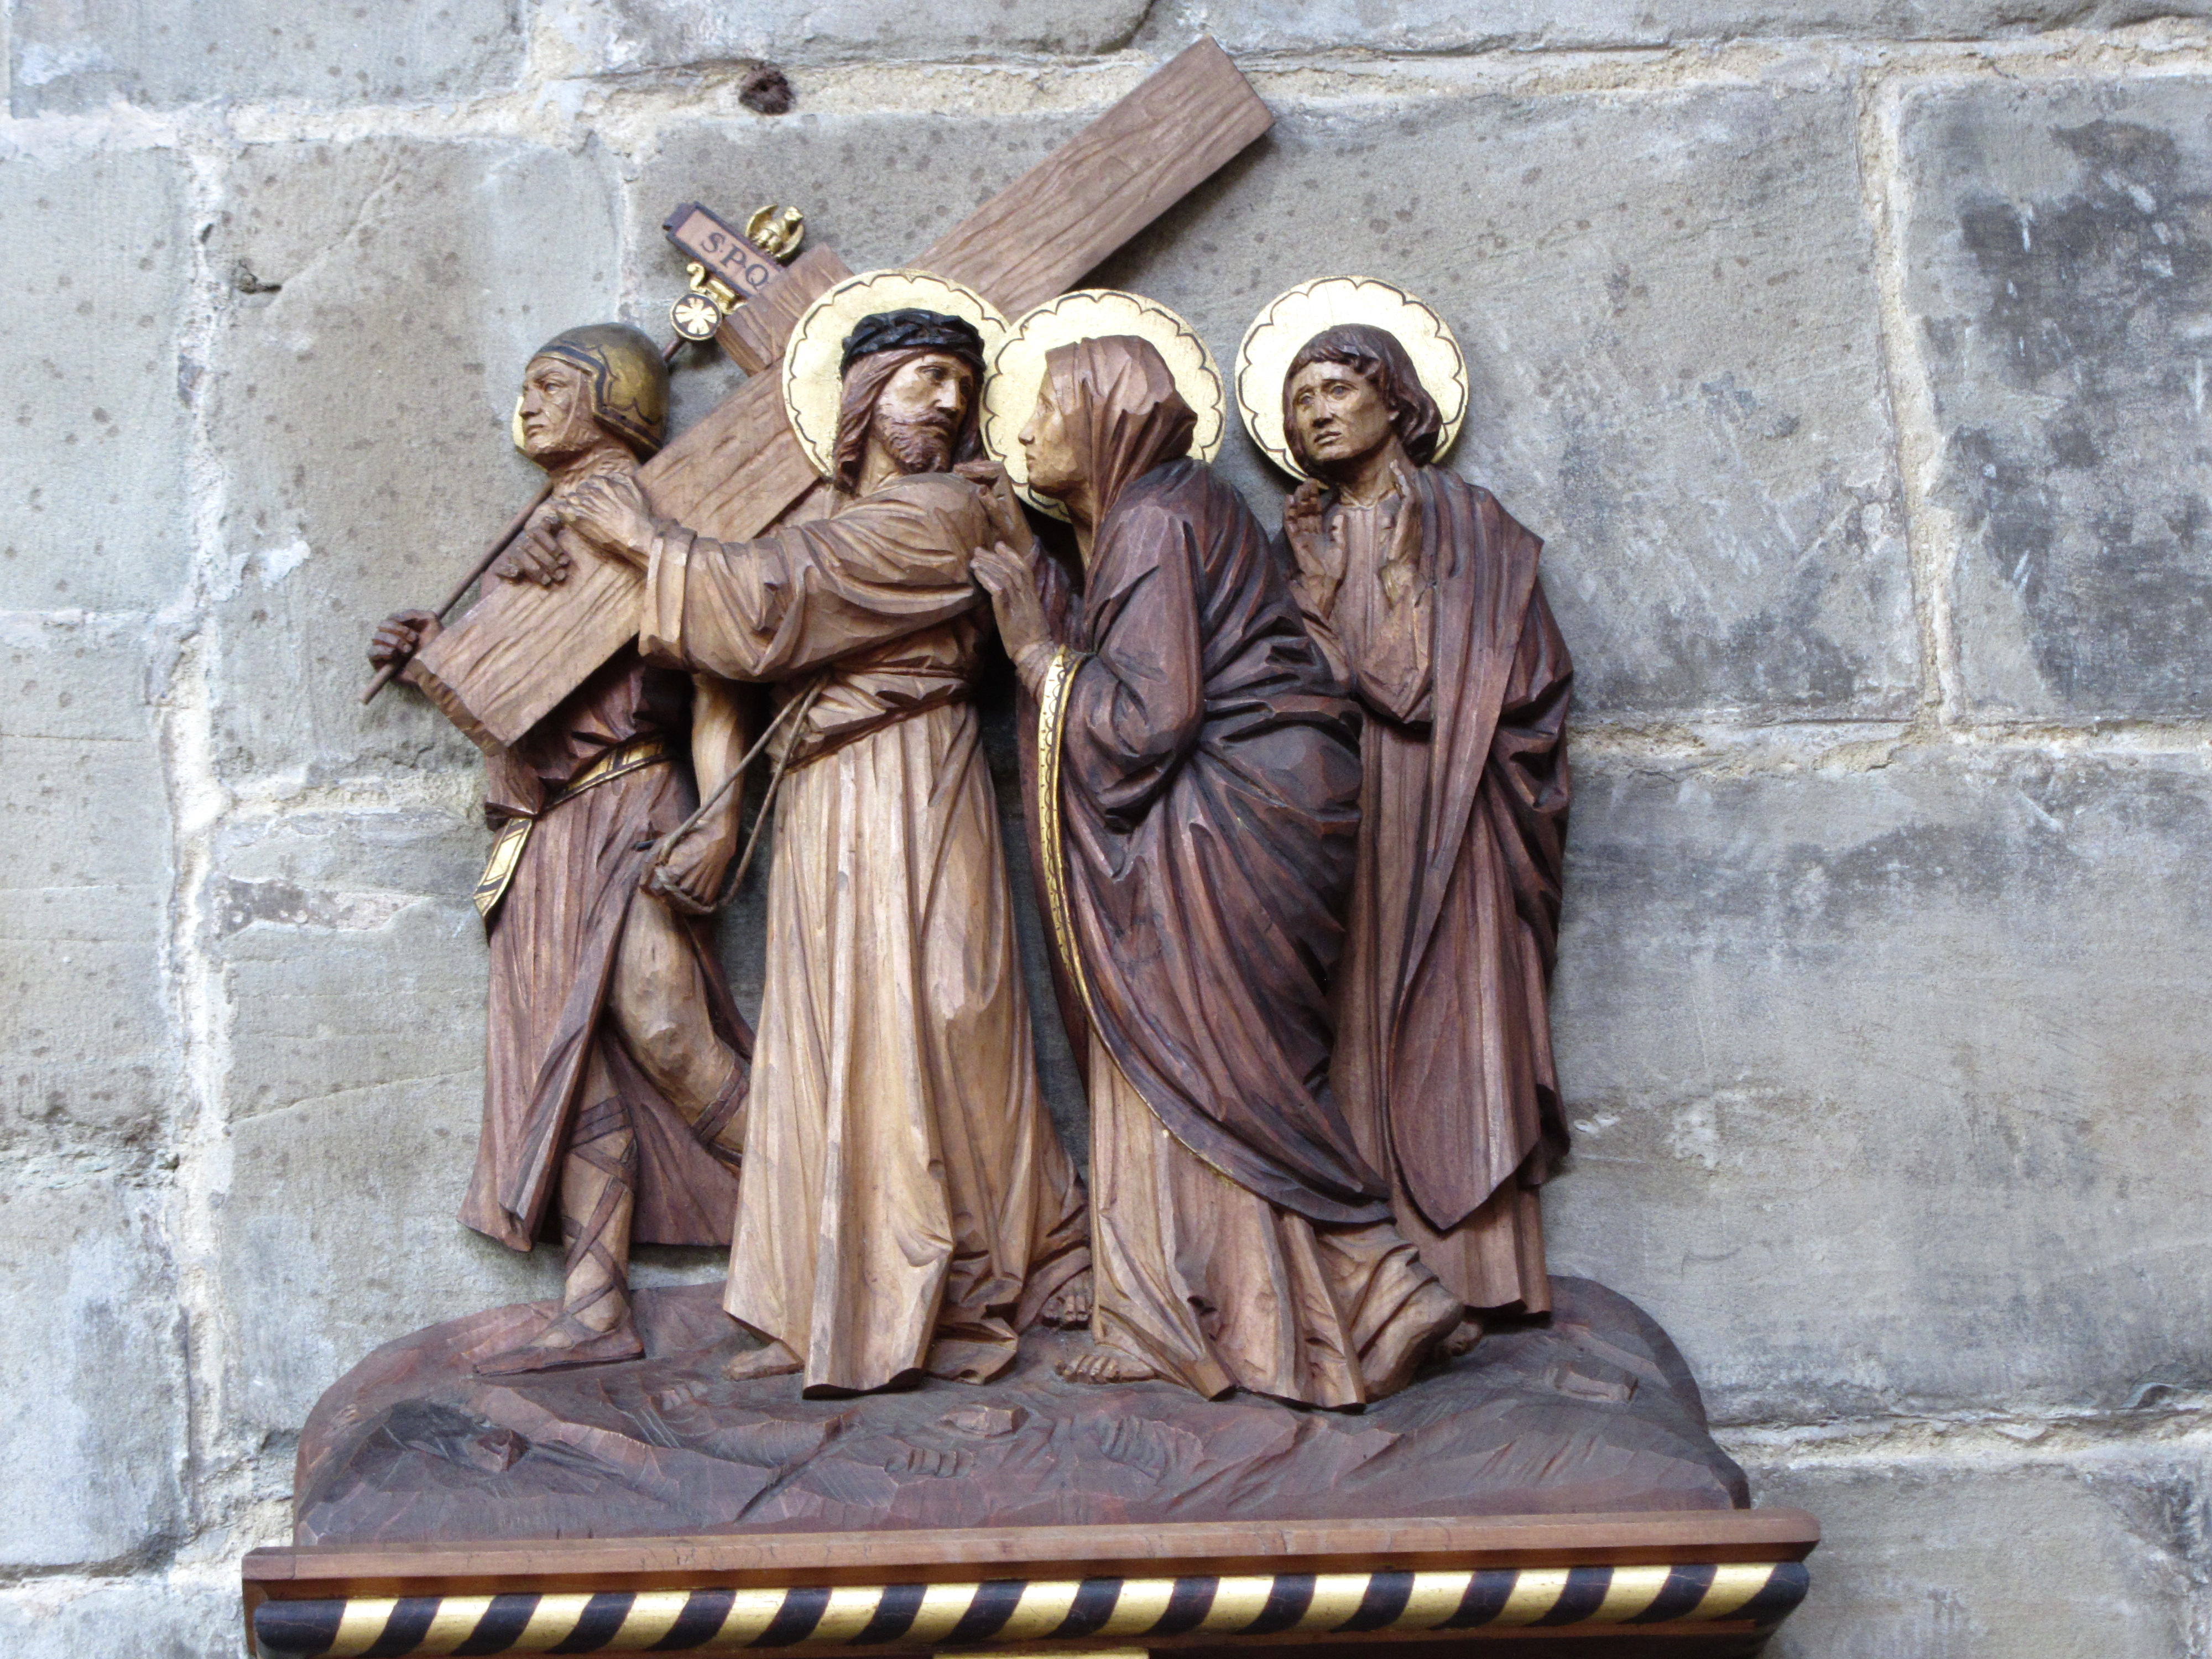 Stations of the Cross at St. John's